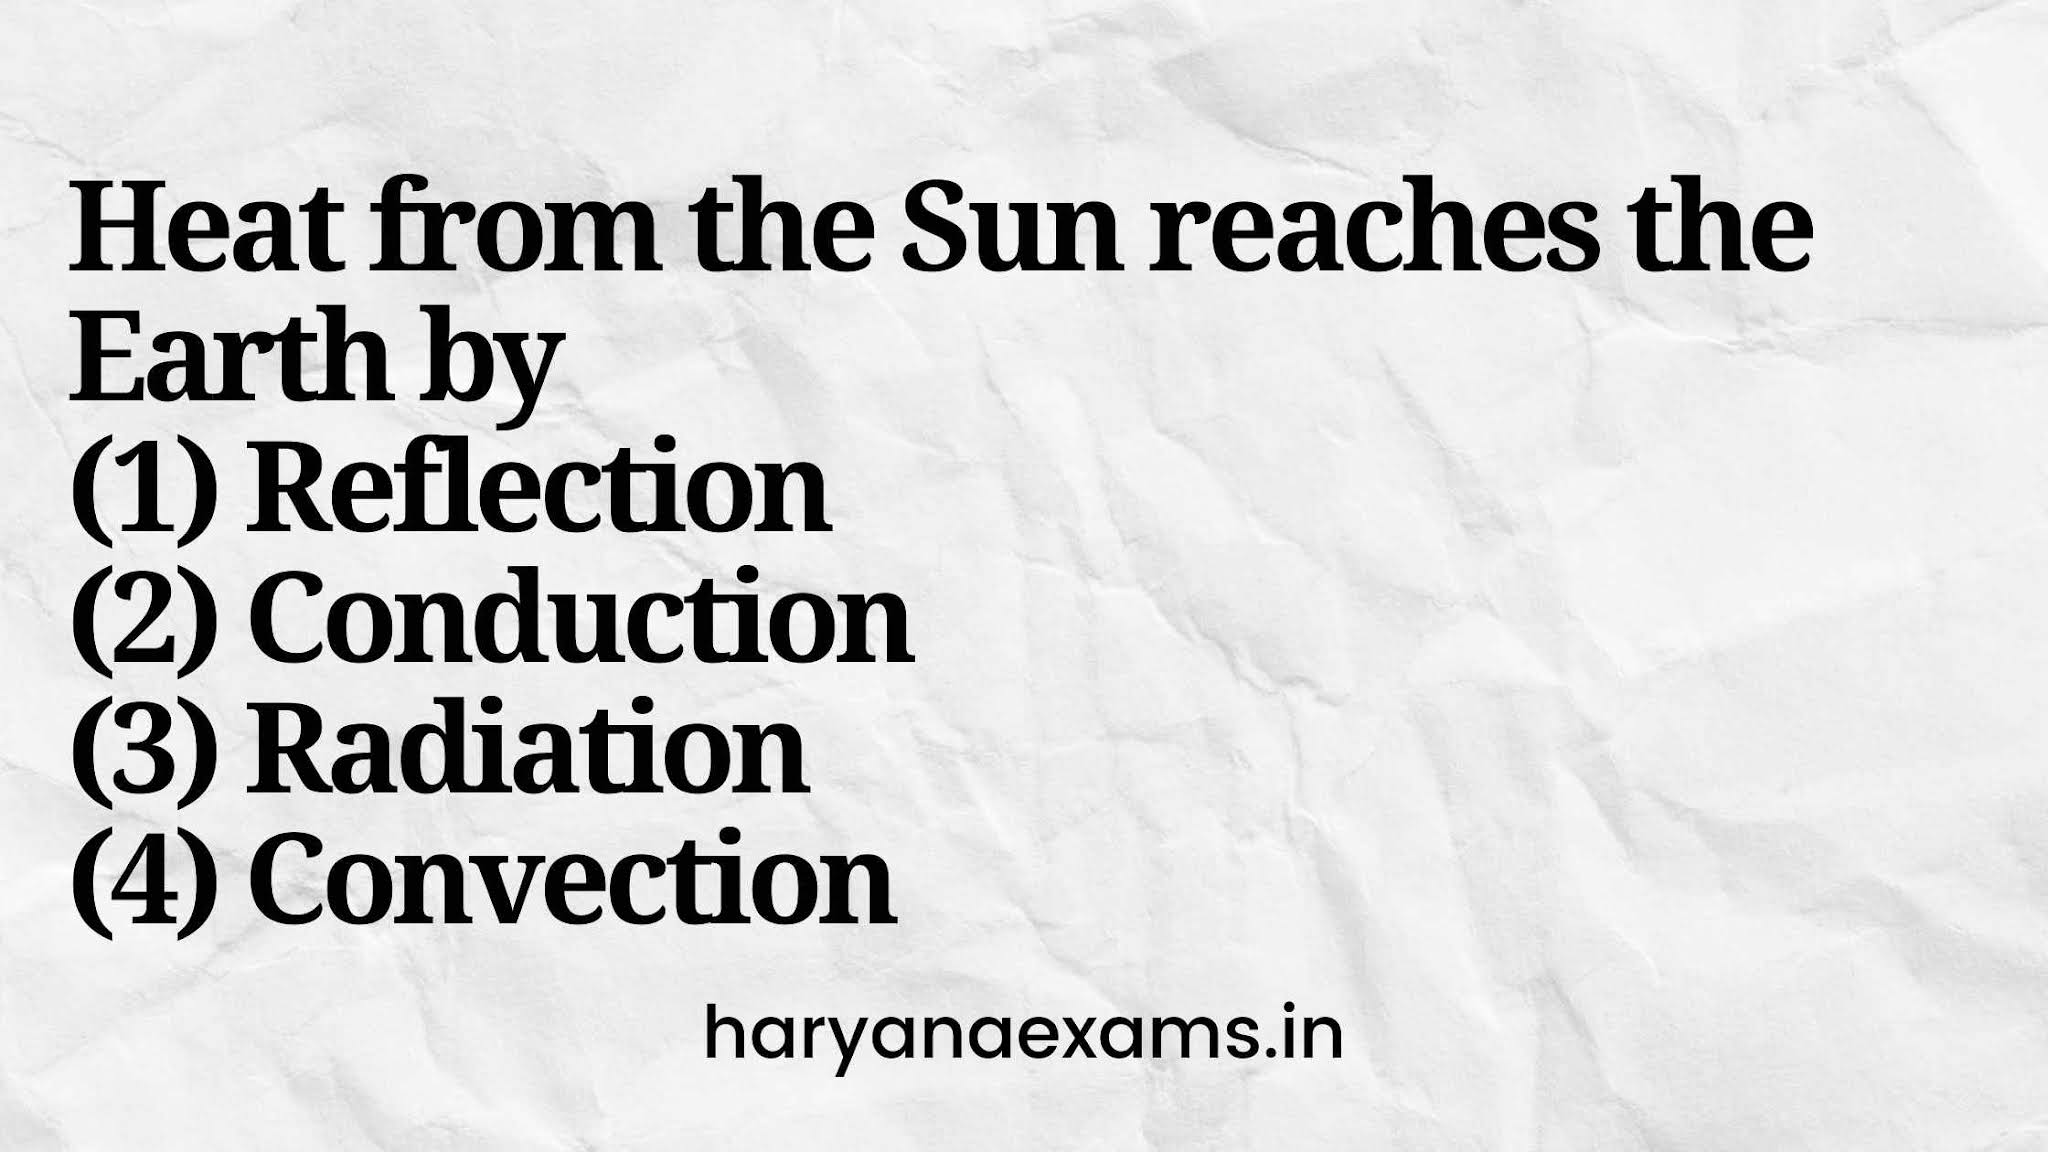 Heat from the Sun reaches the Earth by   (1) Reflection   (2) Conduction   (3) Radiation   (4) Convection